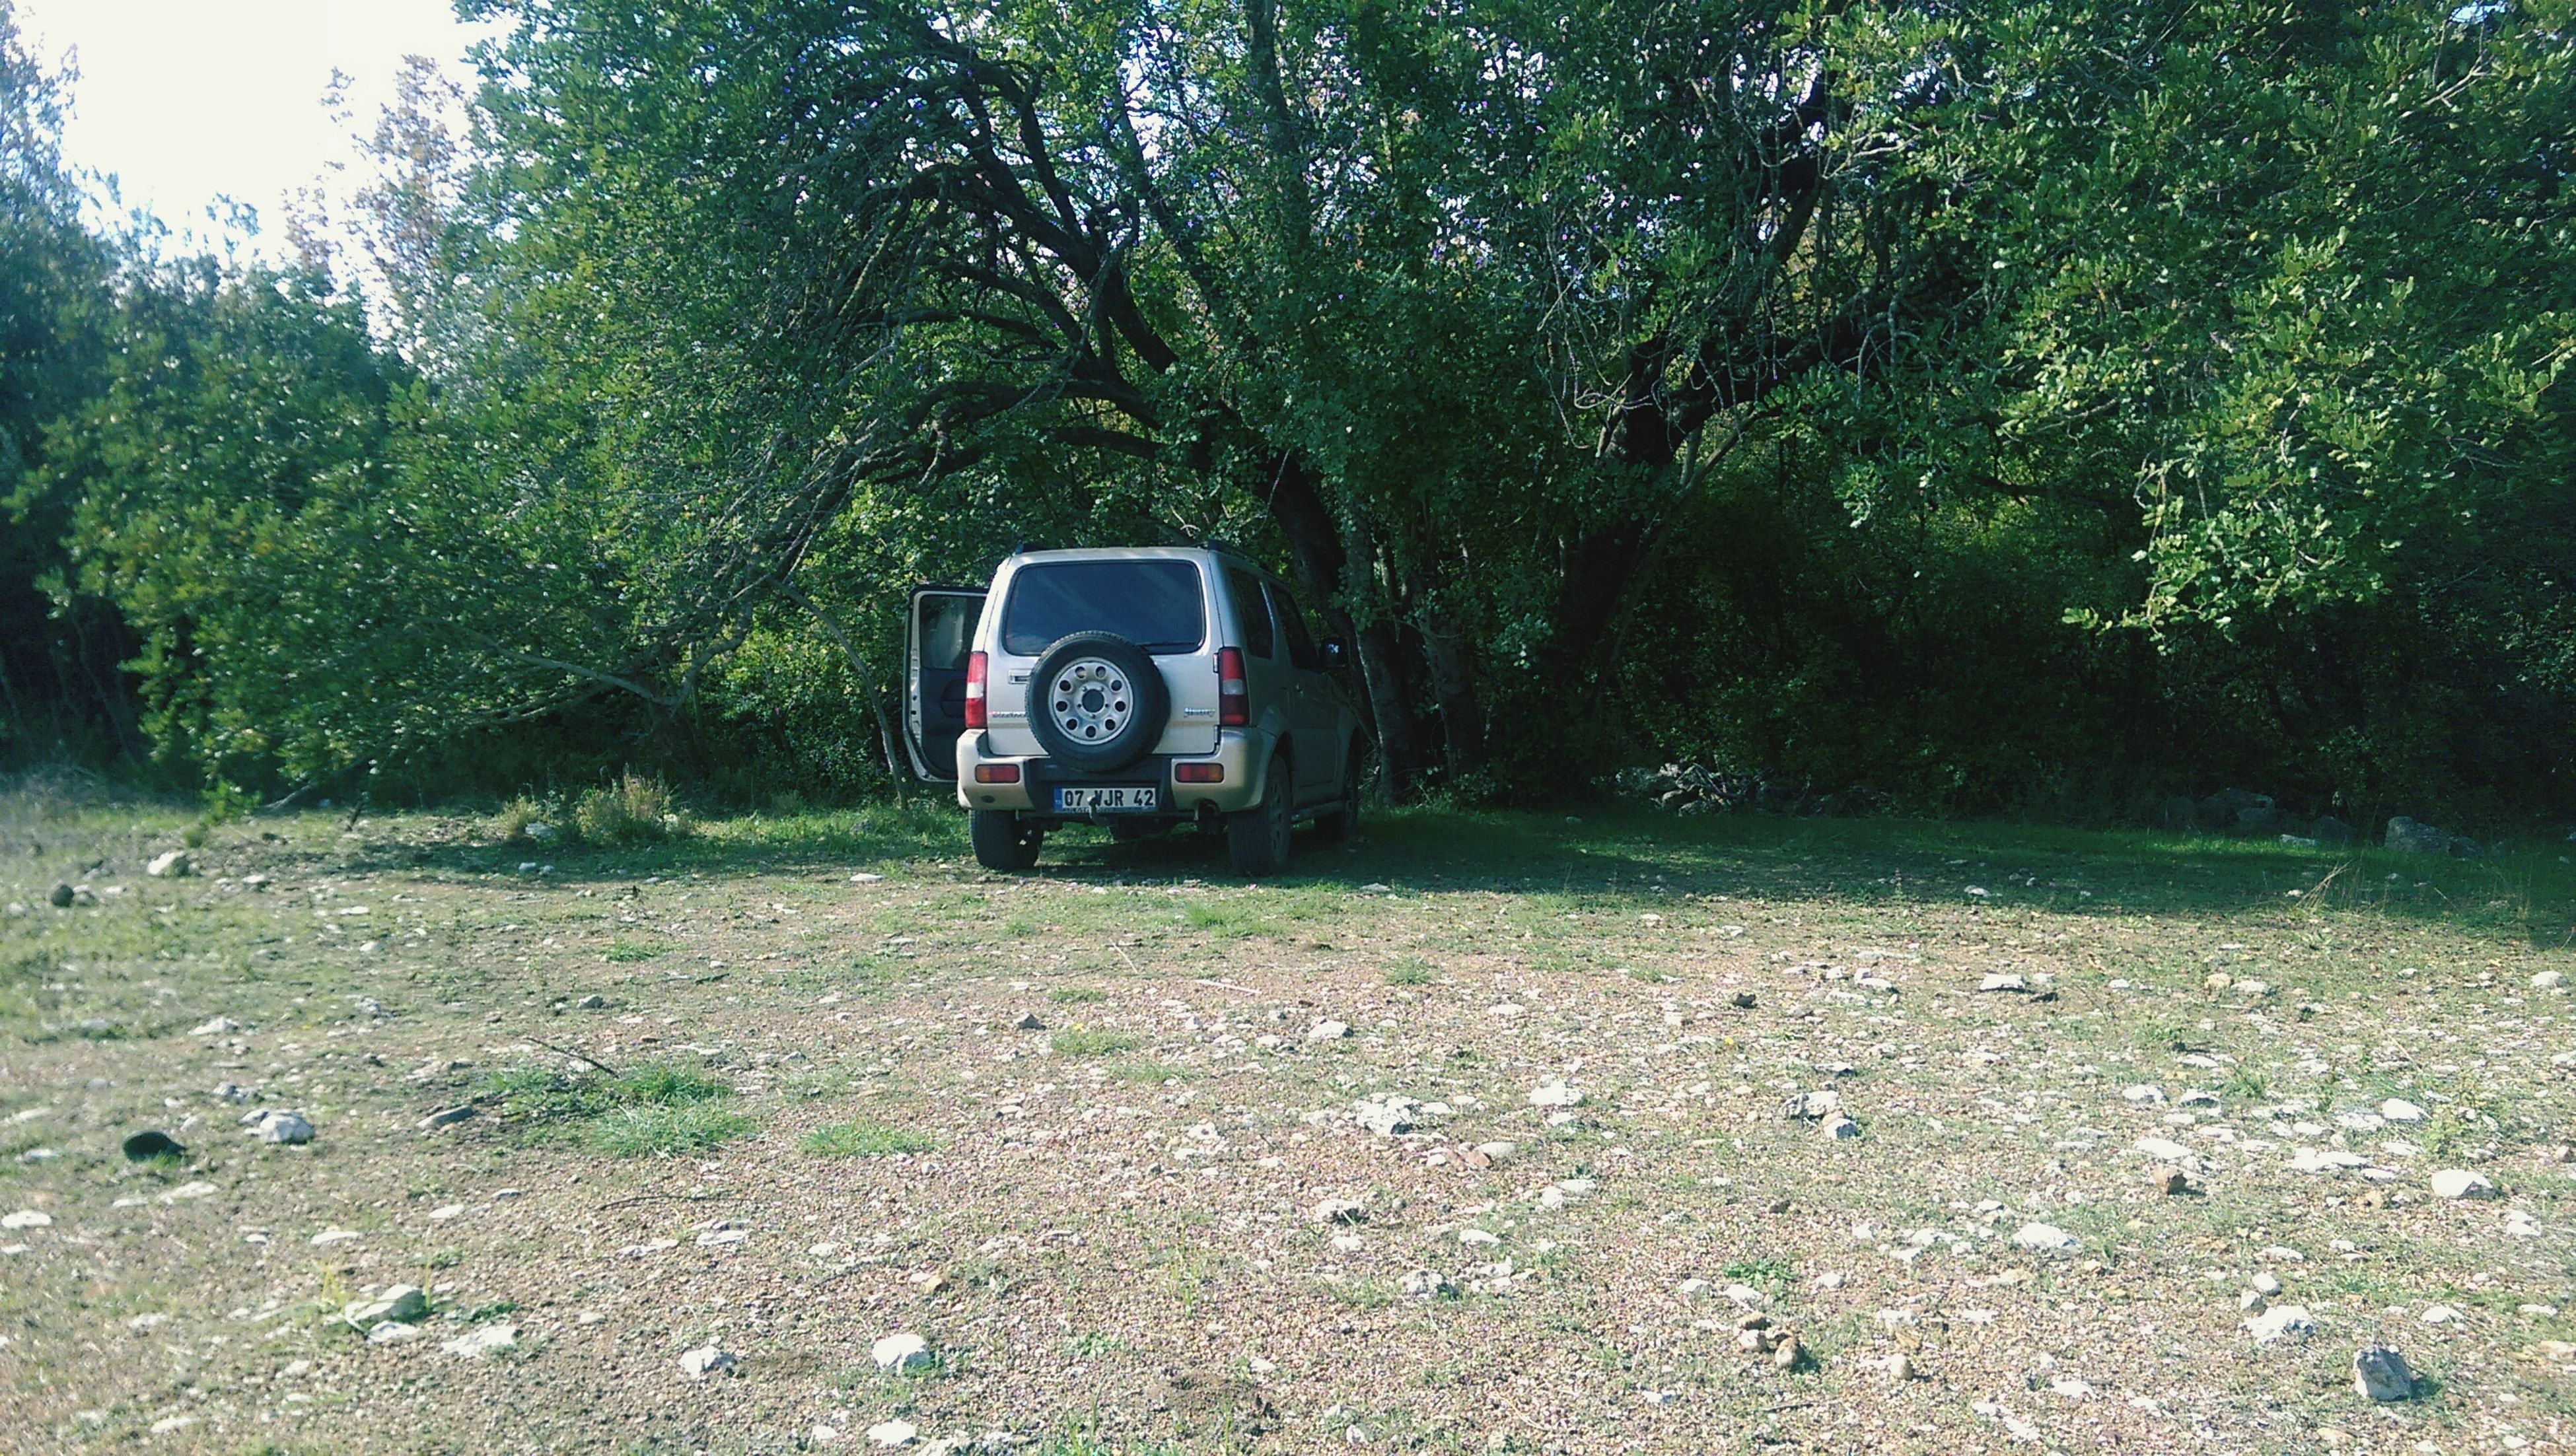 tree, transportation, land vehicle, mode of transport, growth, car, tranquility, nature, field, day, plant, landscape, outdoors, tranquil scene, grass, travel, road, green color